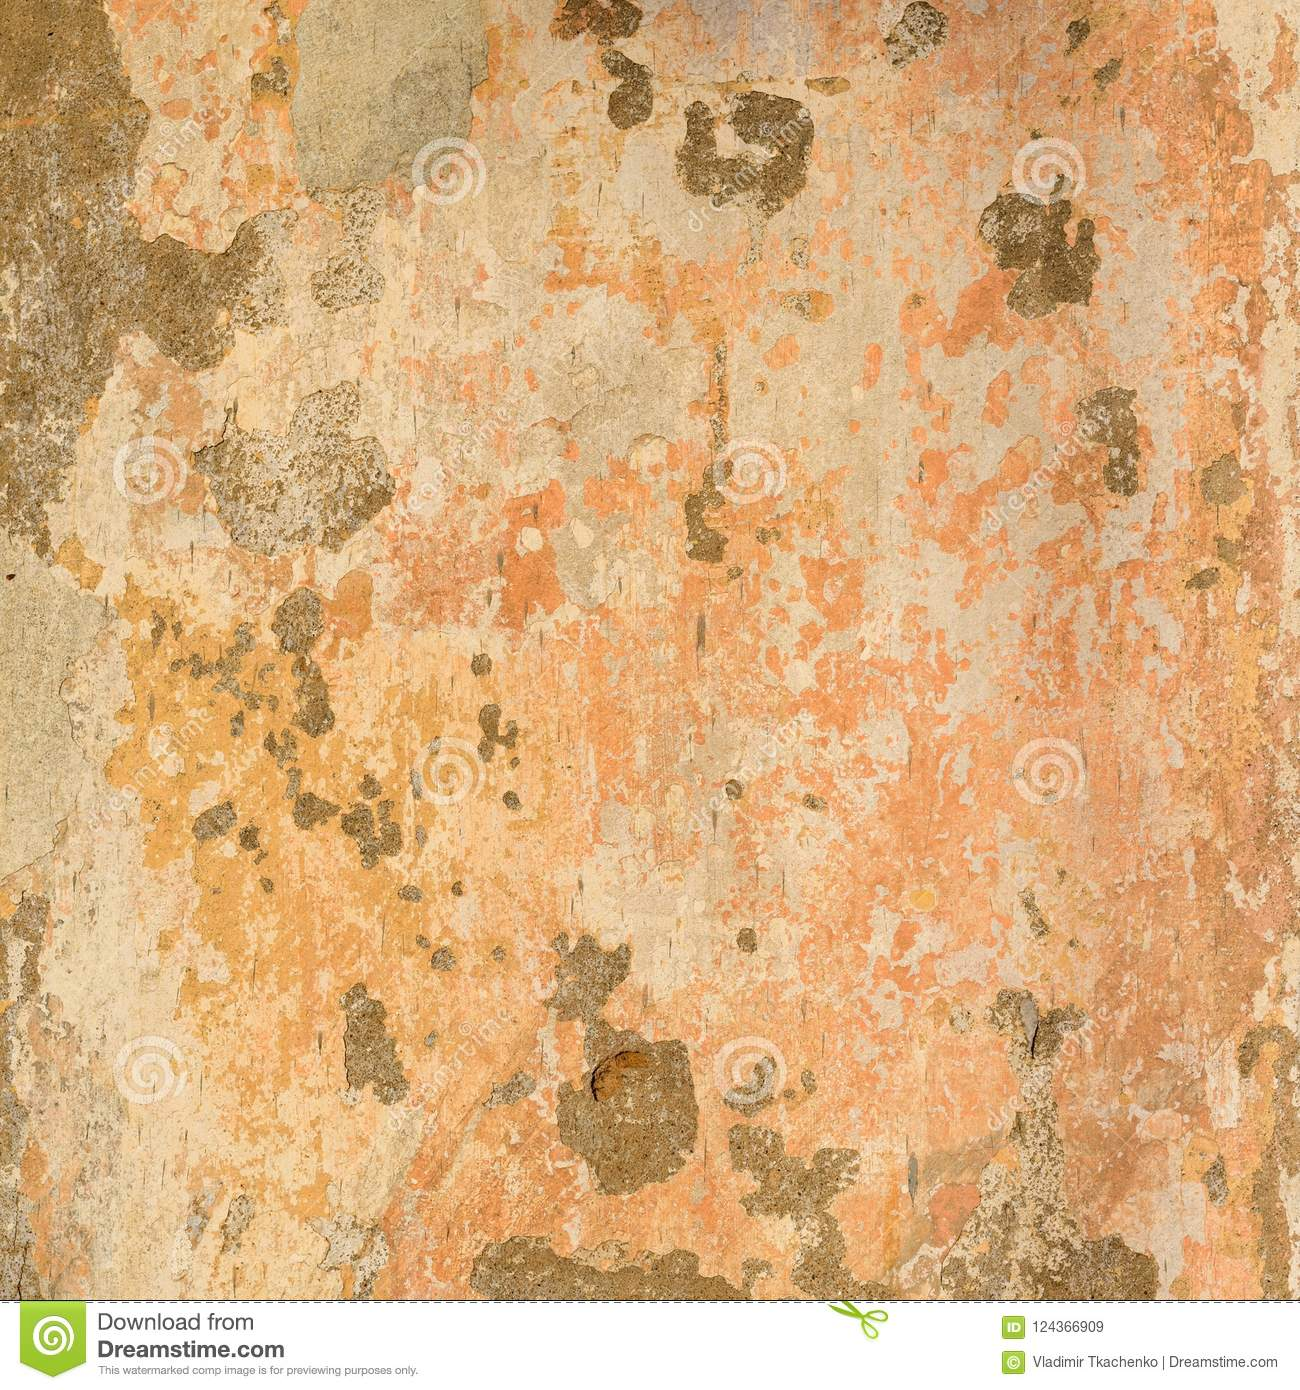 Old Concrete Painted Beige Pastel Wall Texture Stock Image - Image ...